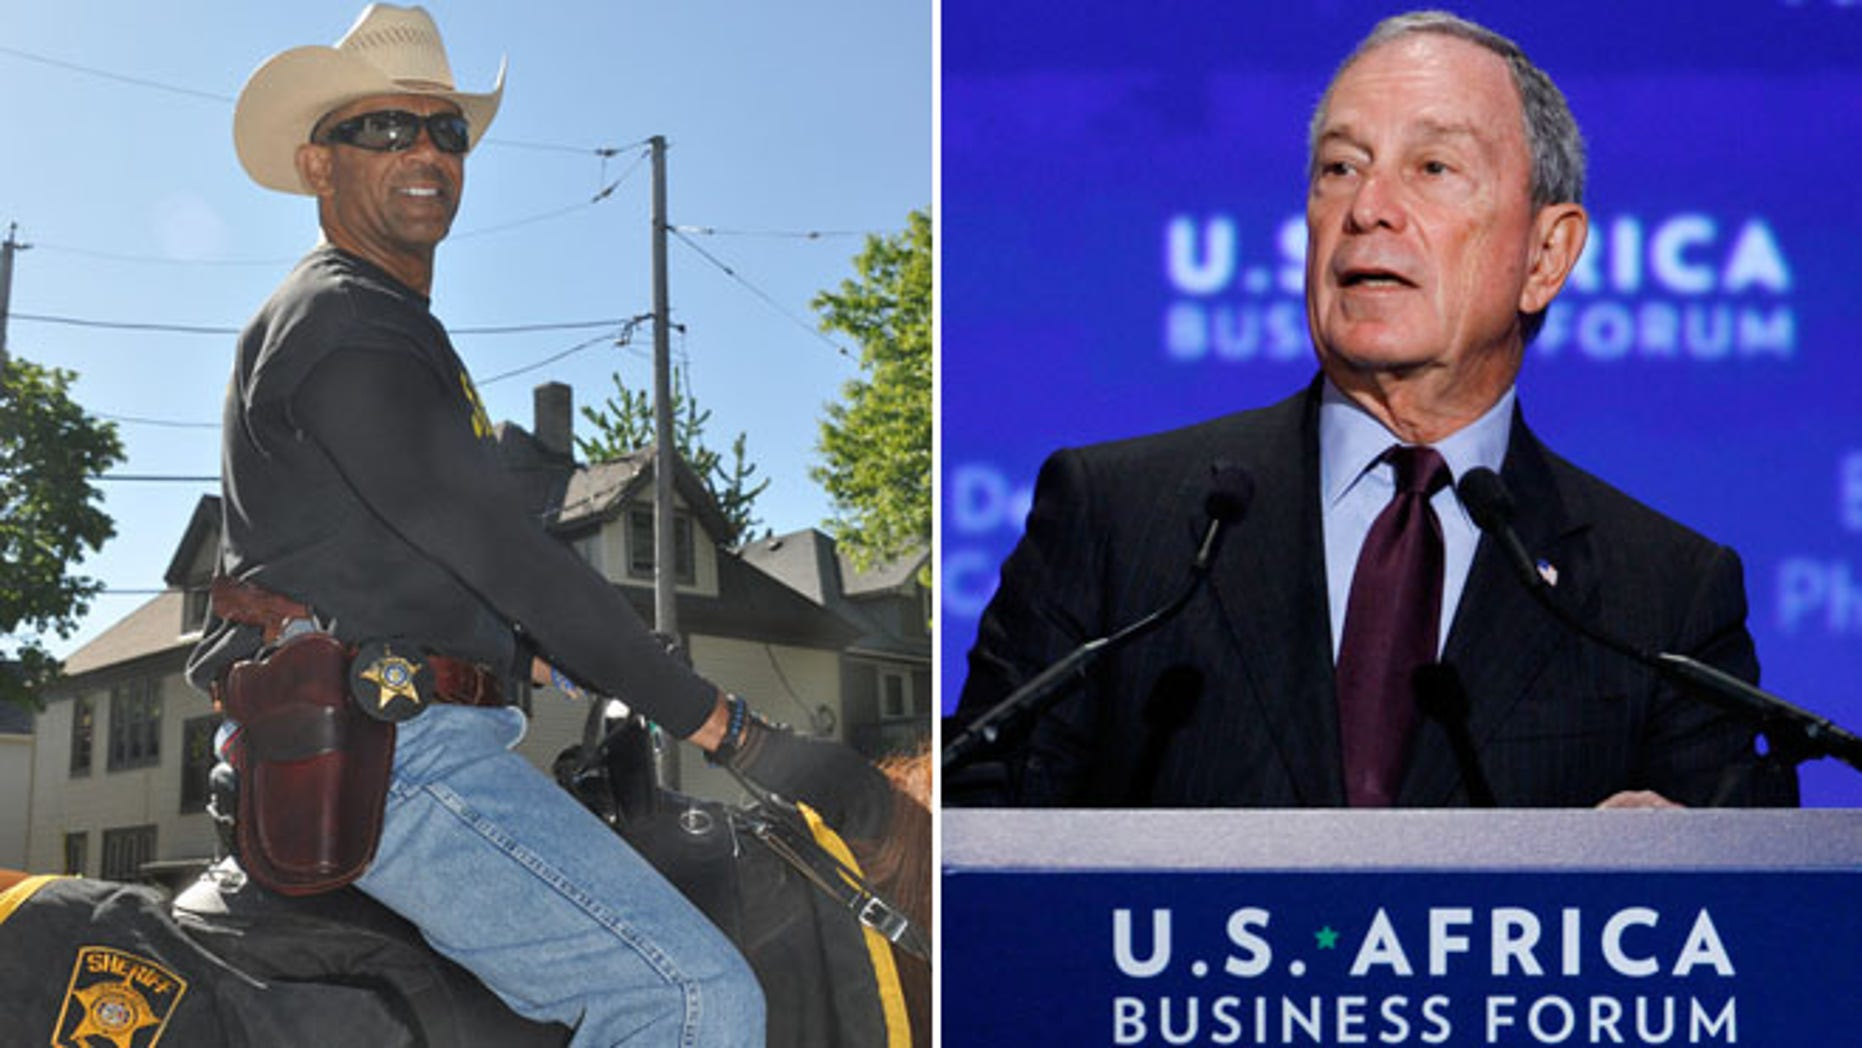 Milwaukee County Sheriff David A. Clarke, left, and former New York City Mayor Michael Bloomberg are seen in this composite image.